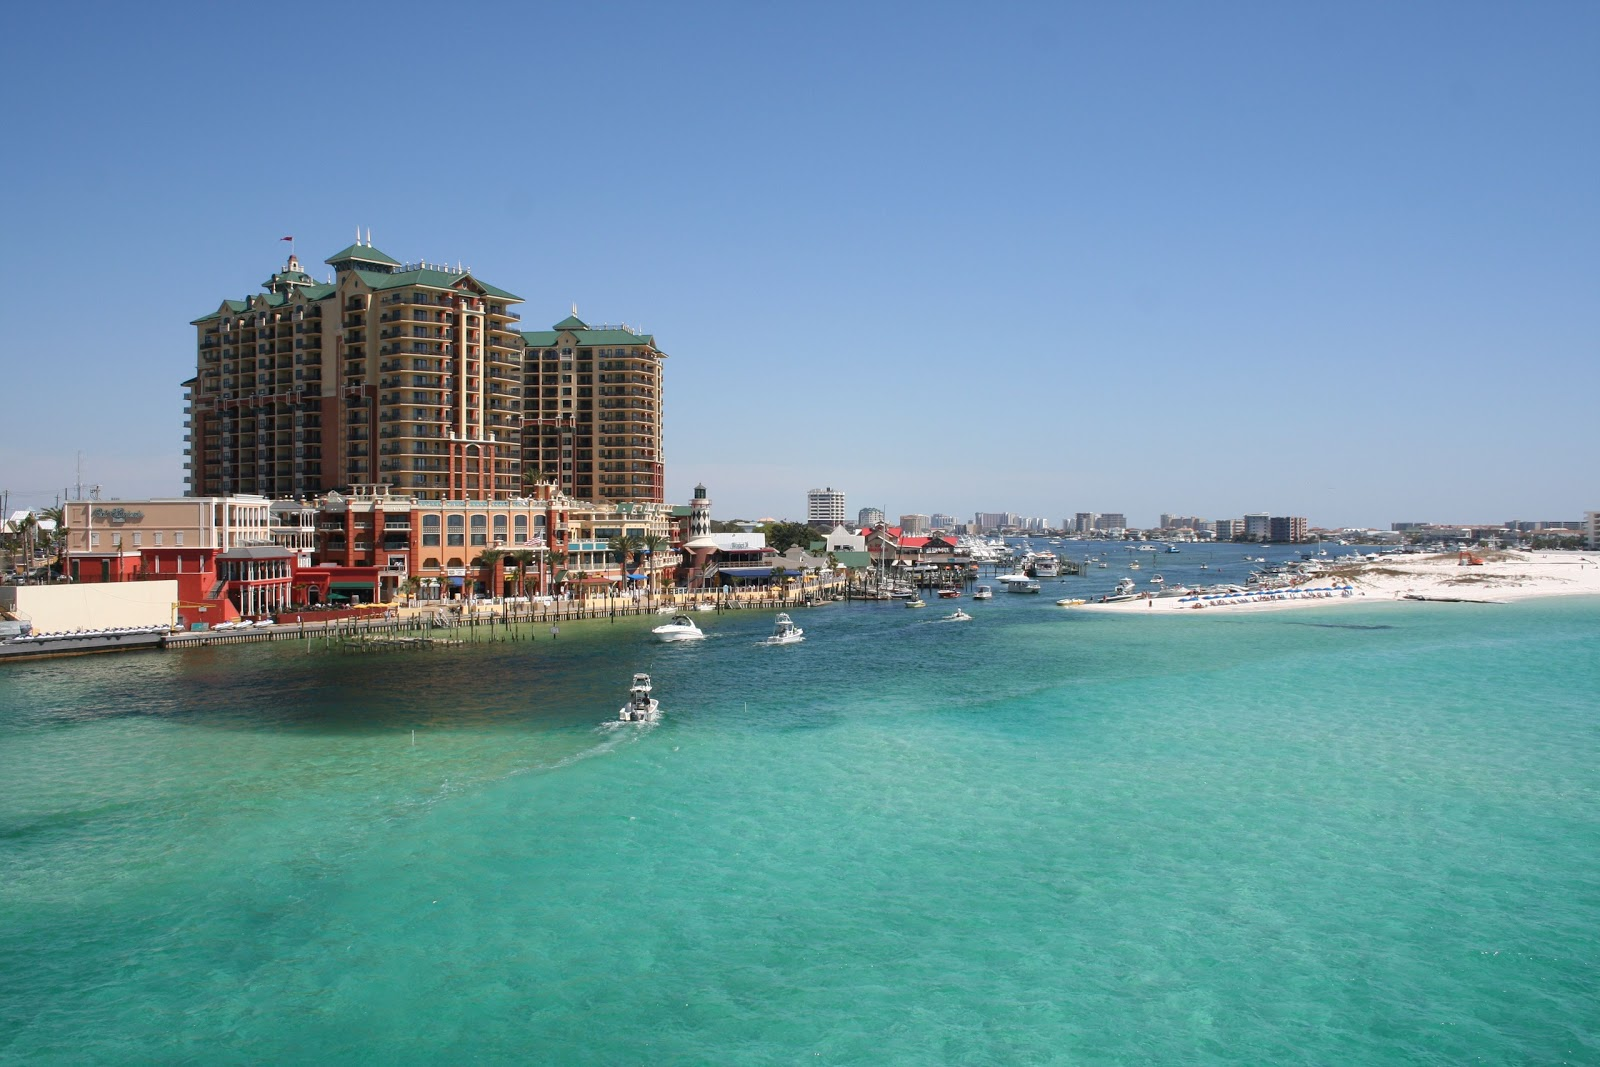 destin a philosophy Seaside is an unincorporated master-planned community on the florida panhandle in walton county, between panama city beach and destin one of the first communities in america designed on the principles of new urbanism,.